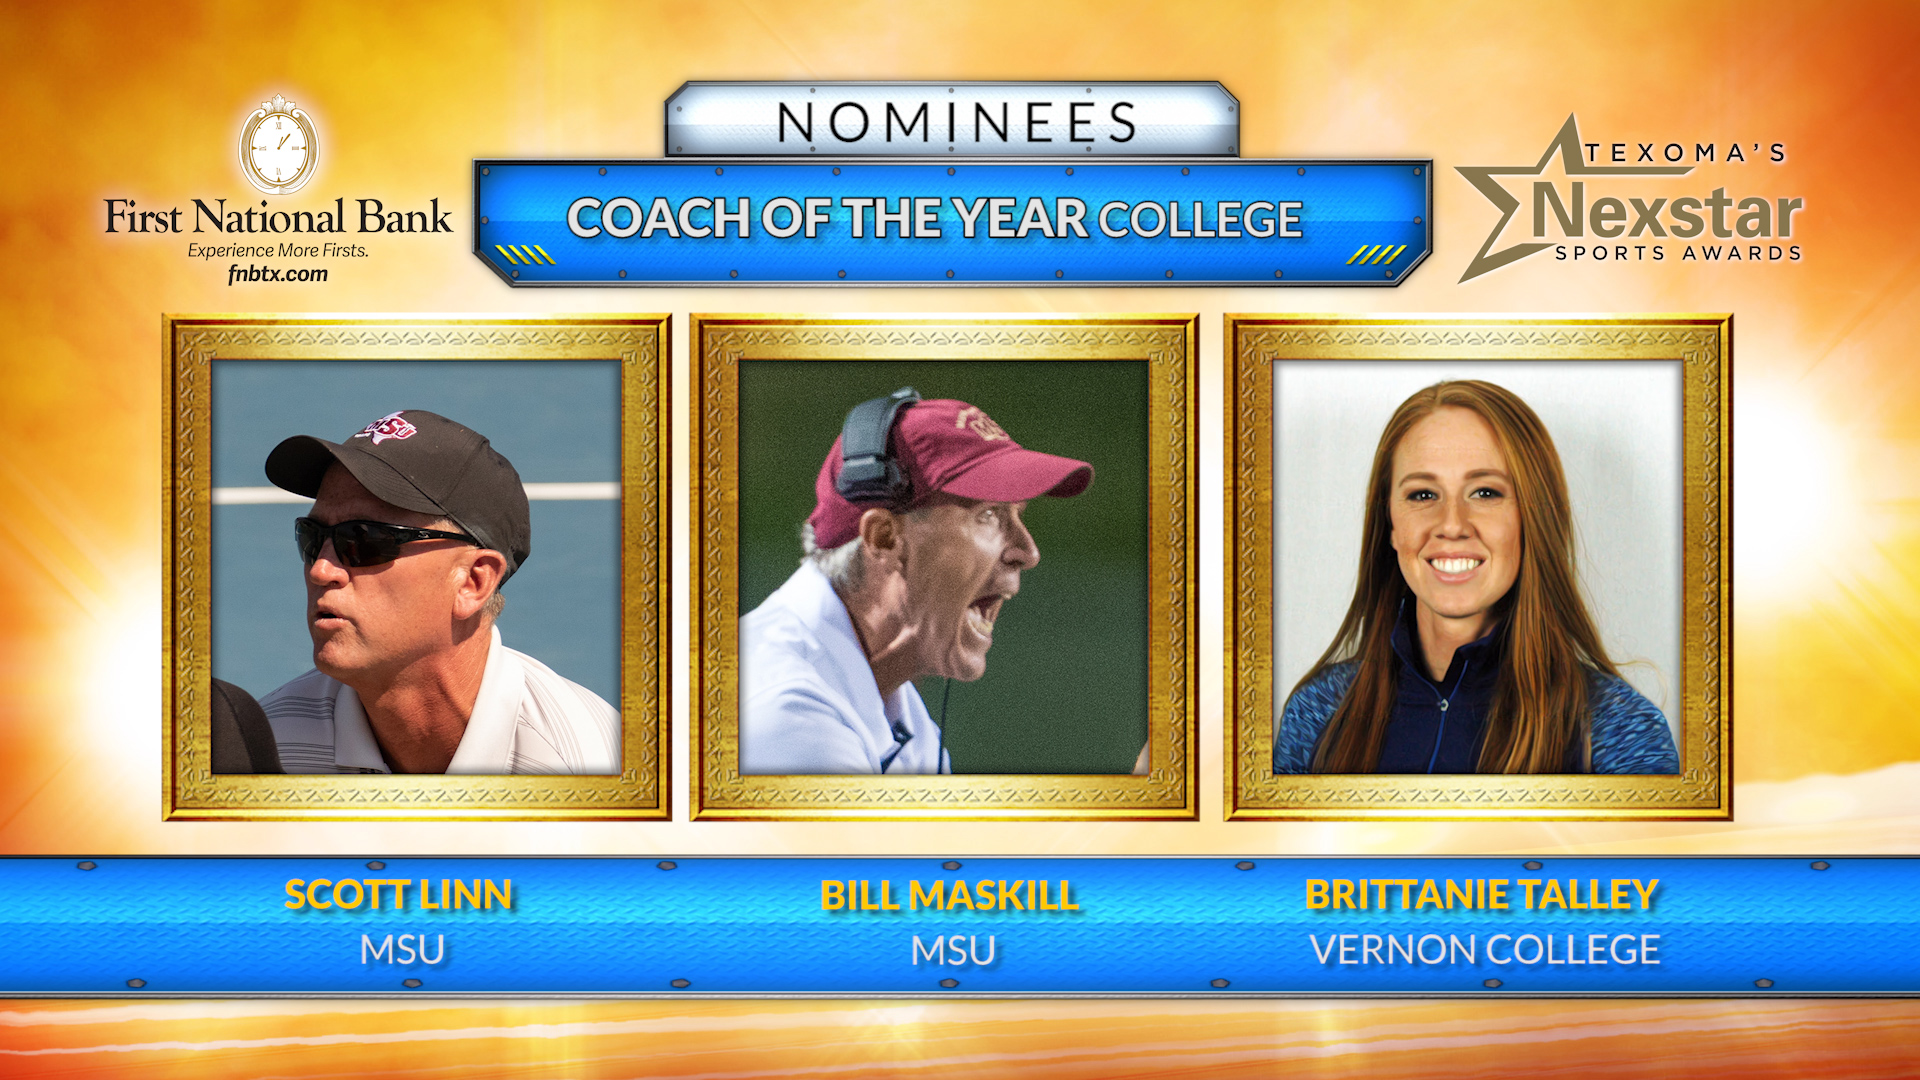 coach of the year college_1560302543375.jpg.jpg